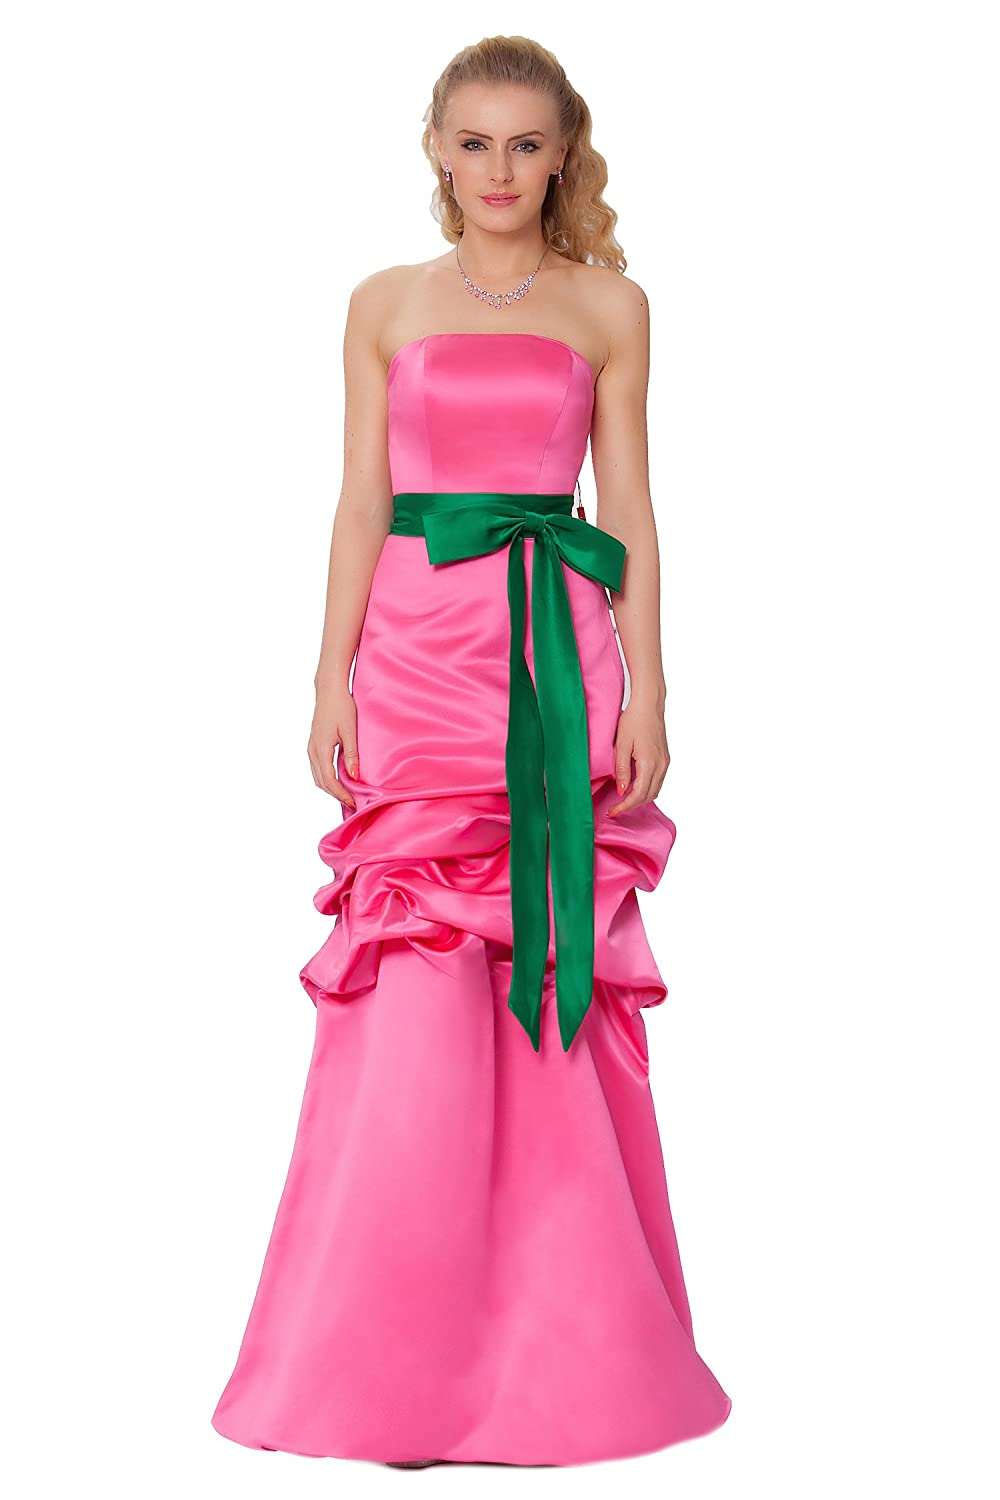 SEXYHER Gorgeous Full Length Strapless Bridesmaids Formal Evening Dress - EDJ1573